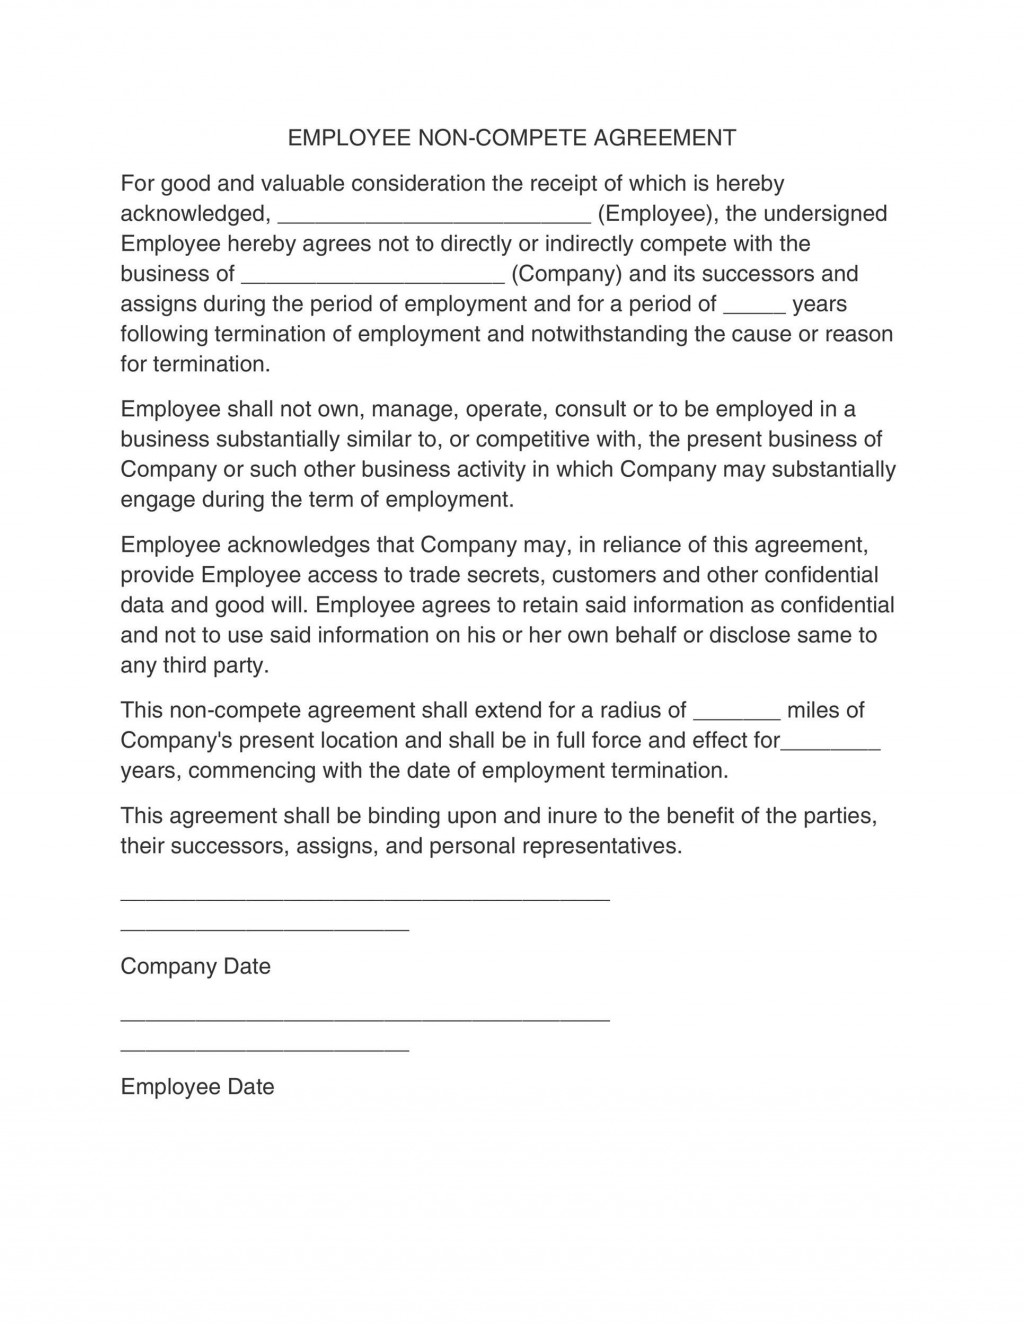 006 Unique Employee Non Compete Agreement Template Photo  Free Confidentiality Non-compete DisclosureLarge